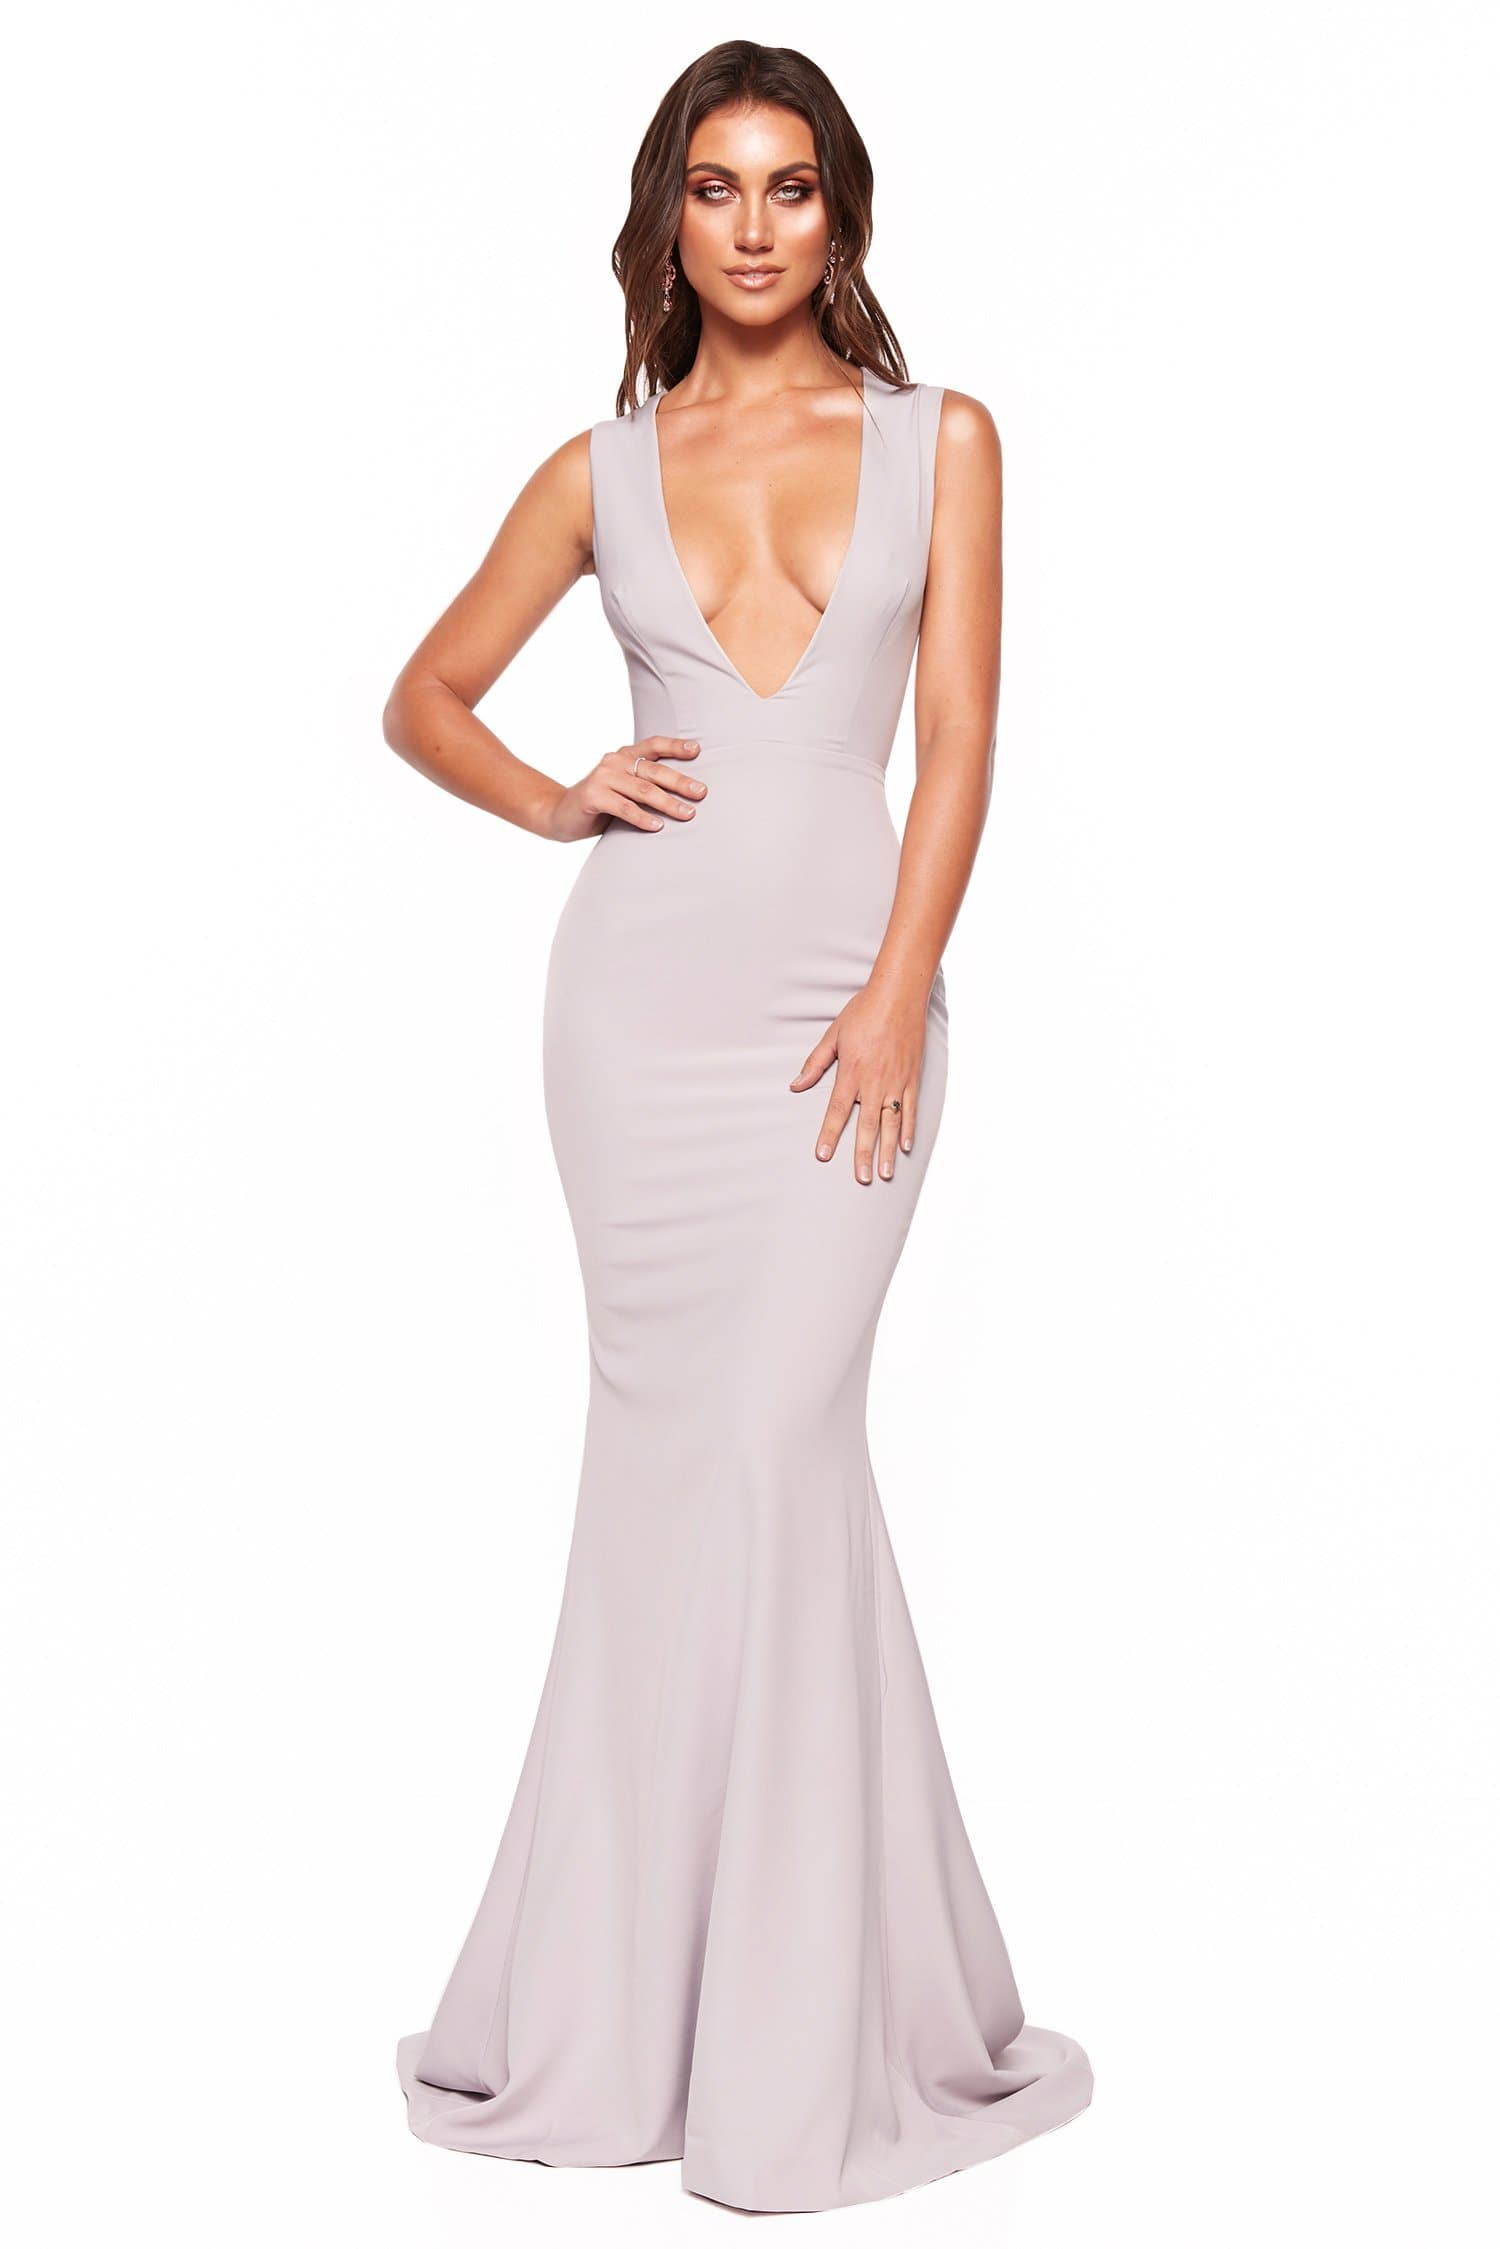 A&N Luxe Scarlett - Grey Lilac Crepe Gown with Plunge Neck & Back Detail